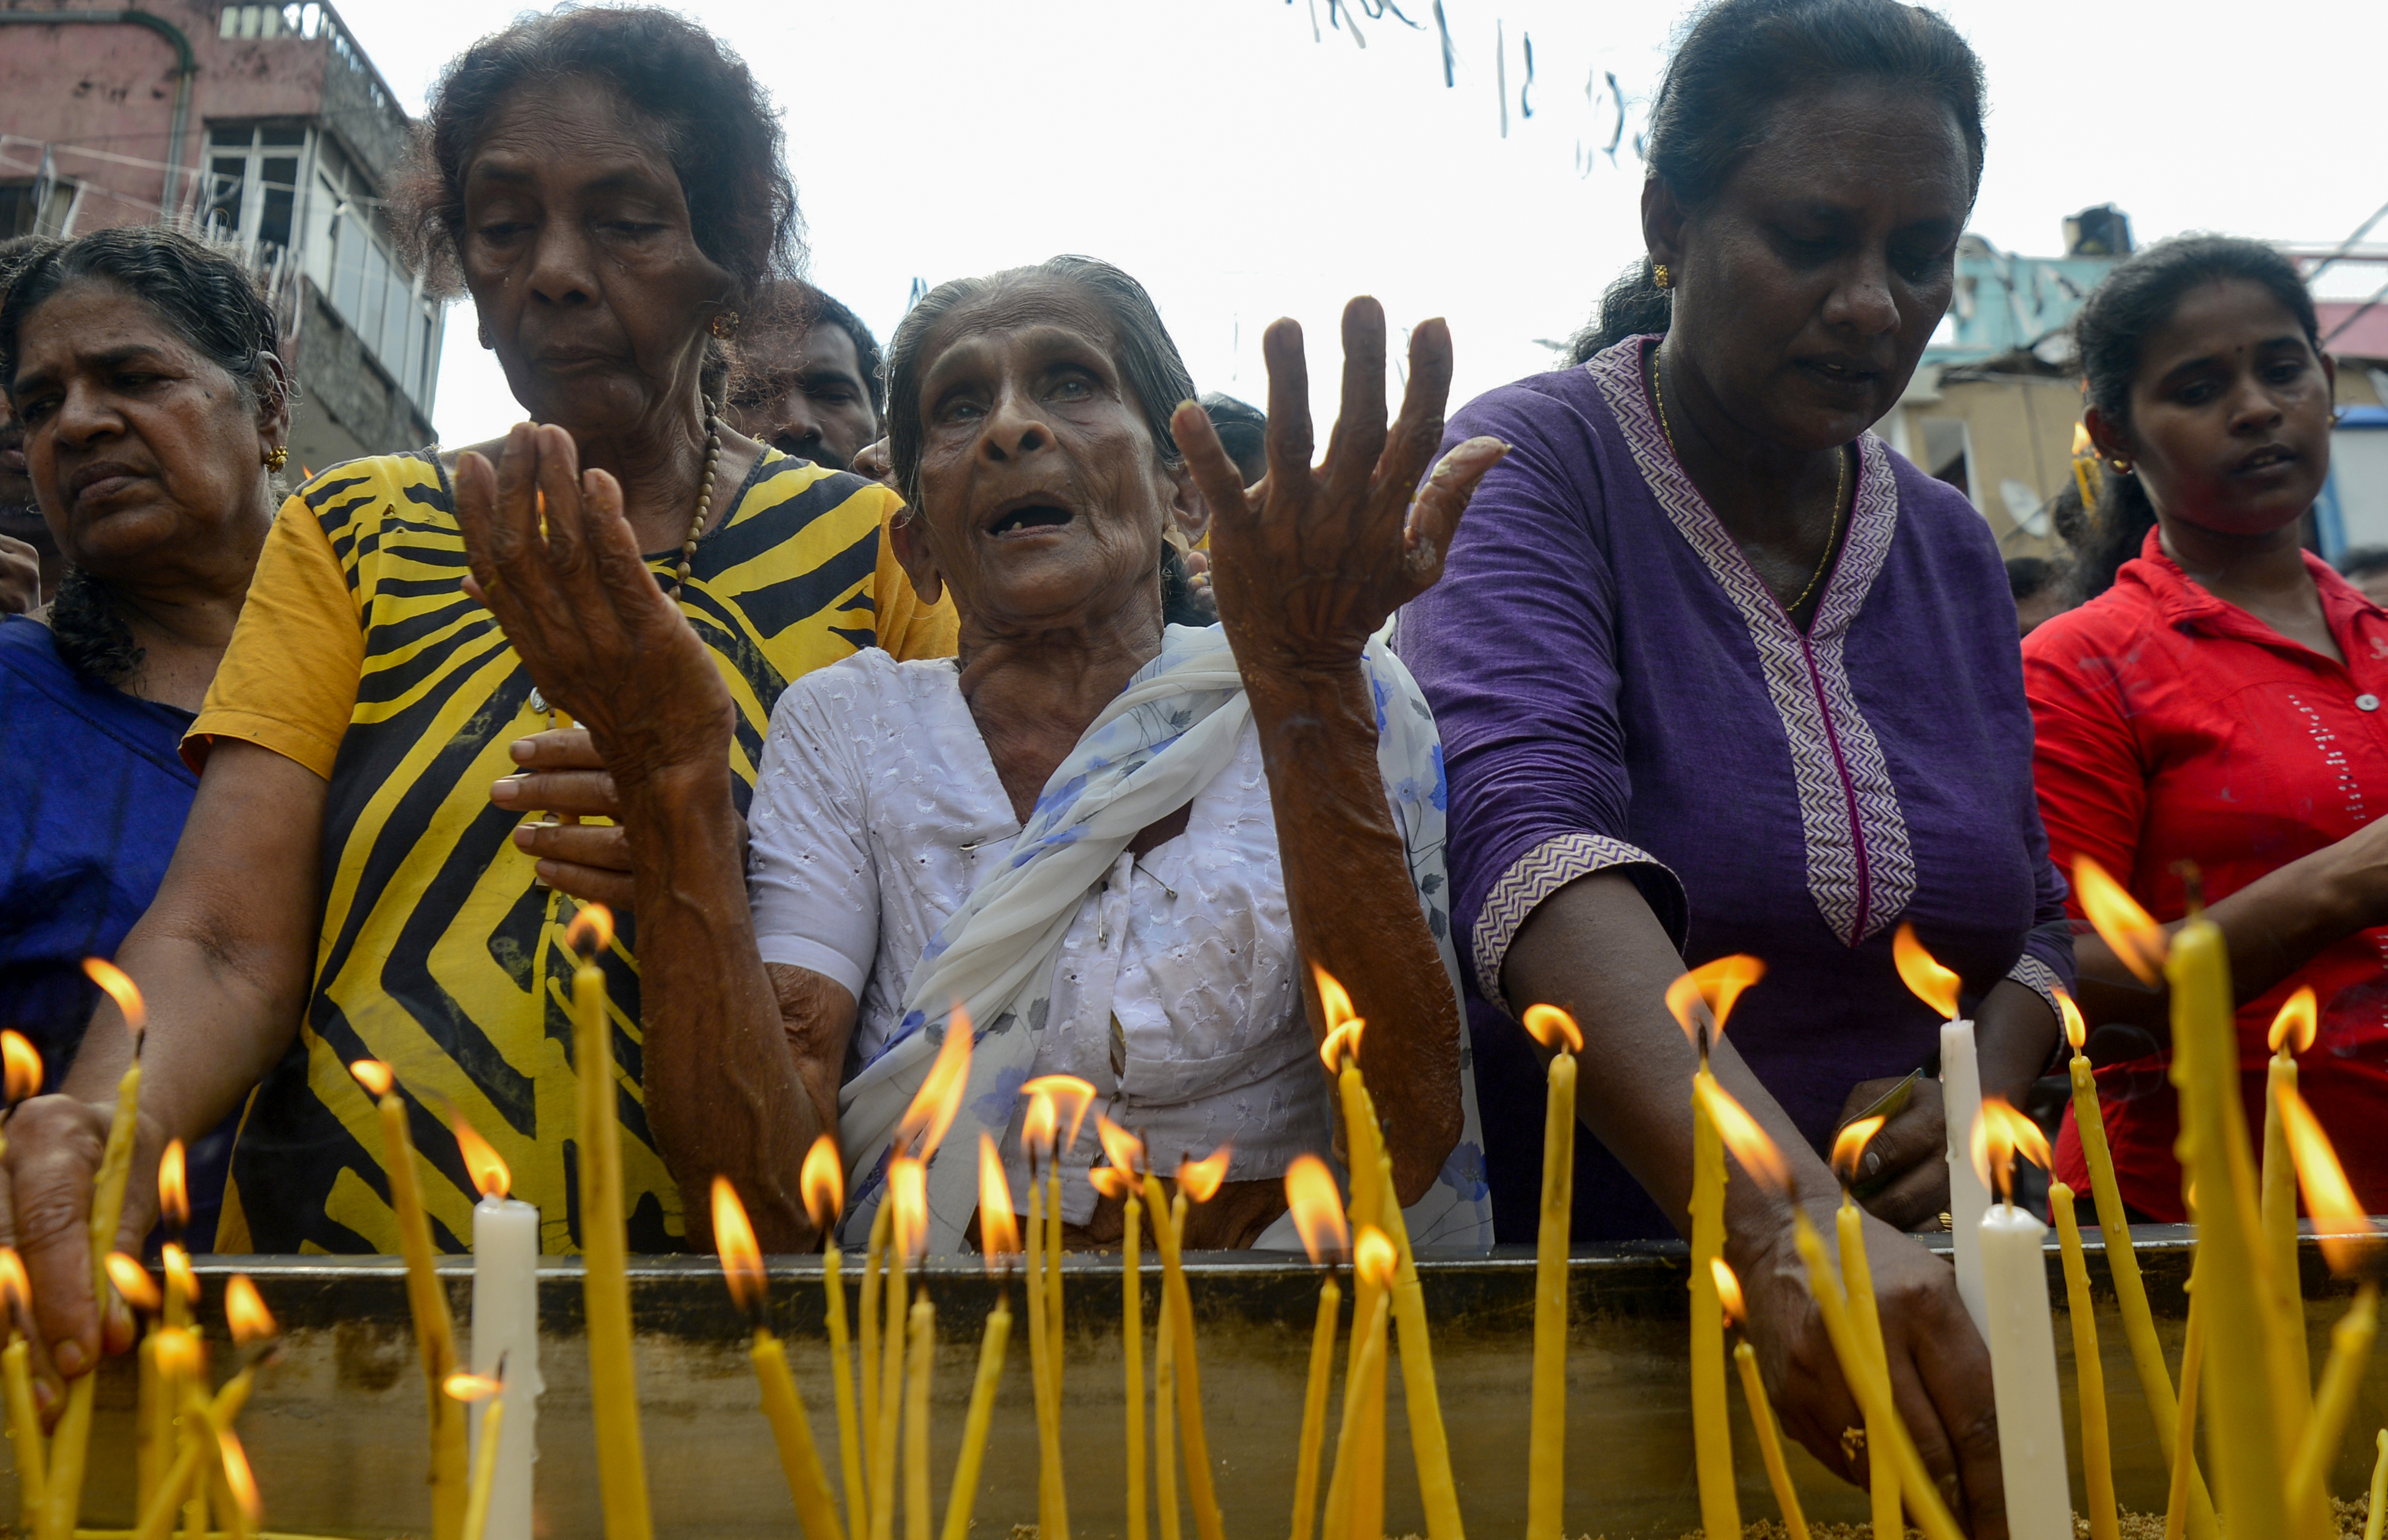 Sri Lankan Christian devotees light candles as they pray at a barricade near St. Anthony's Shrine in Colombo, April 28, 2019, a week after a series of bomb blasts targeting churches and luxury hotels on Easter Sunday in Sri Lanka.